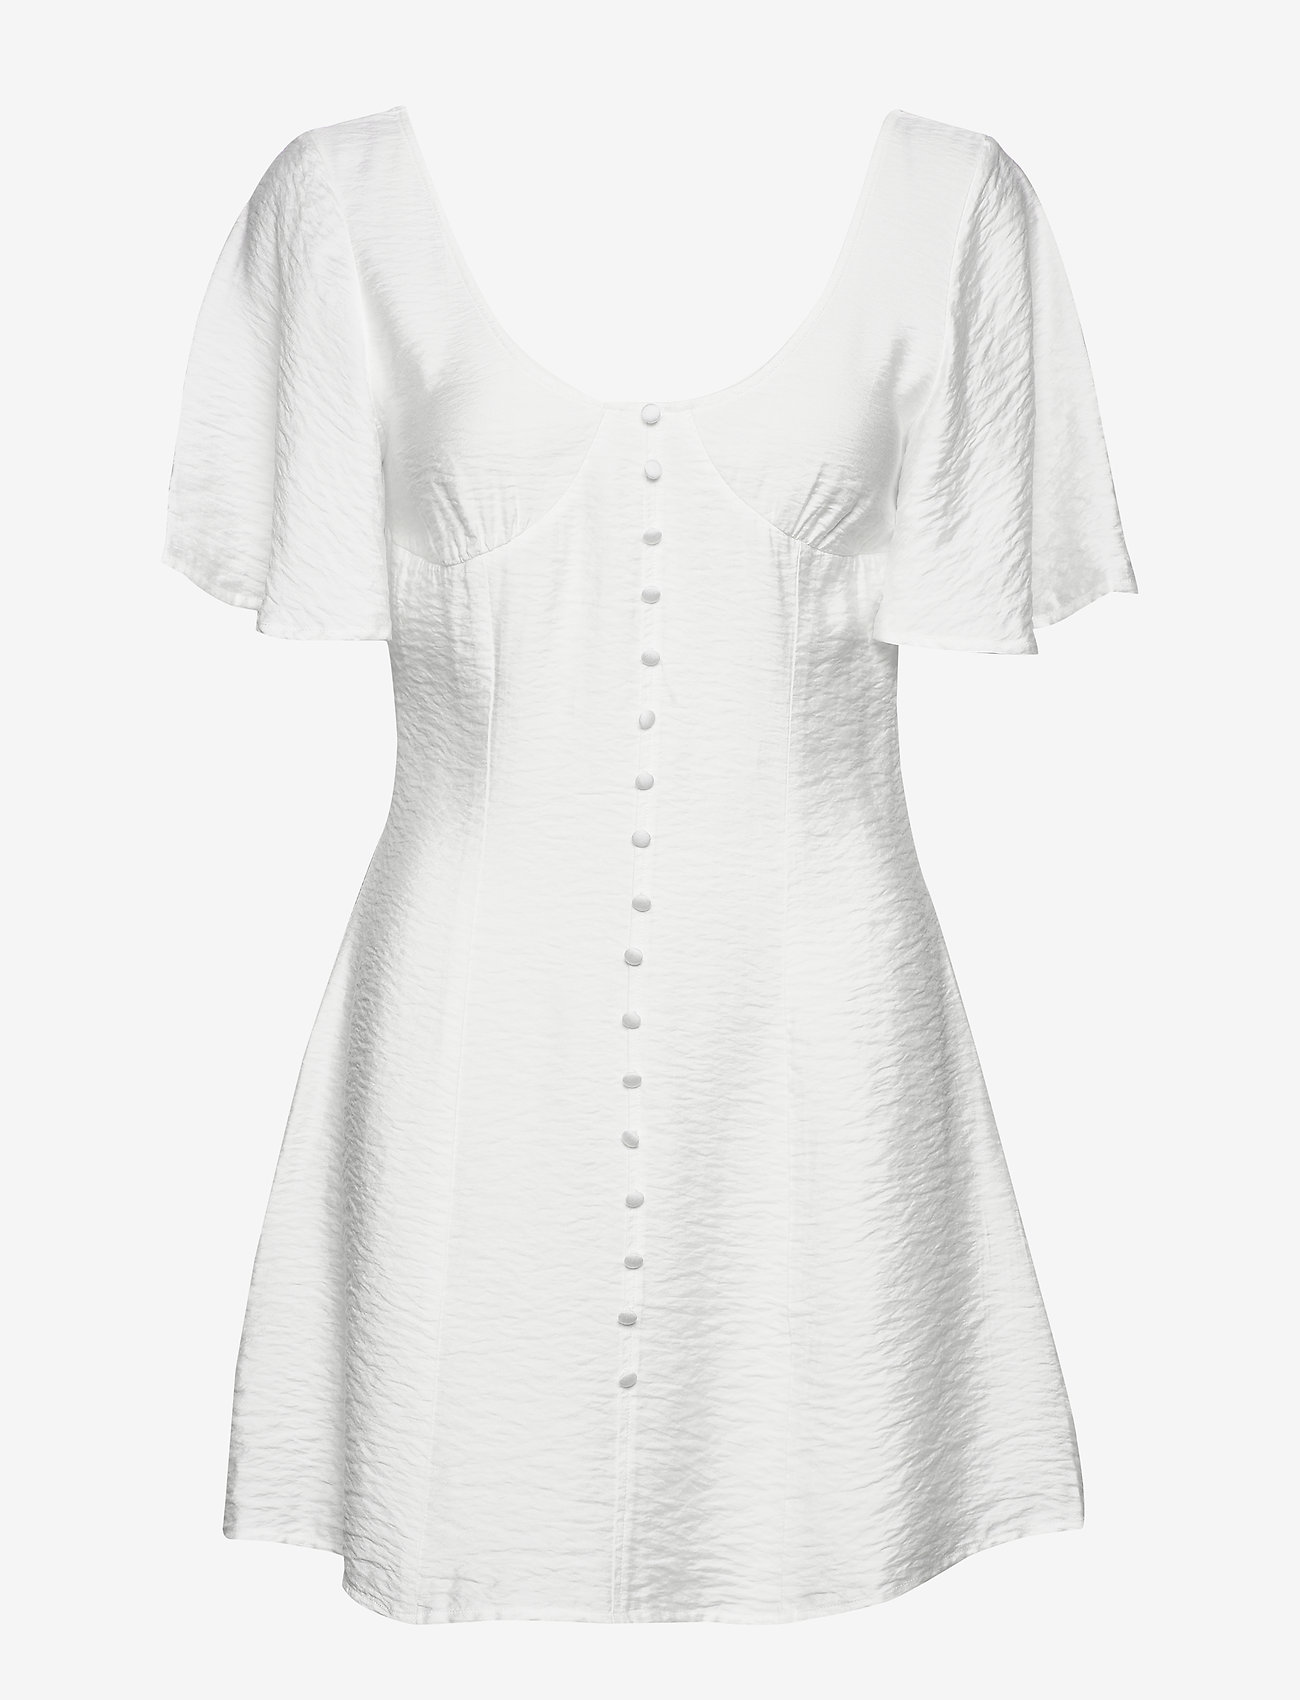 Ivyrevel - BUTTON UP CORSET DRESS - robes courtes - white - 0